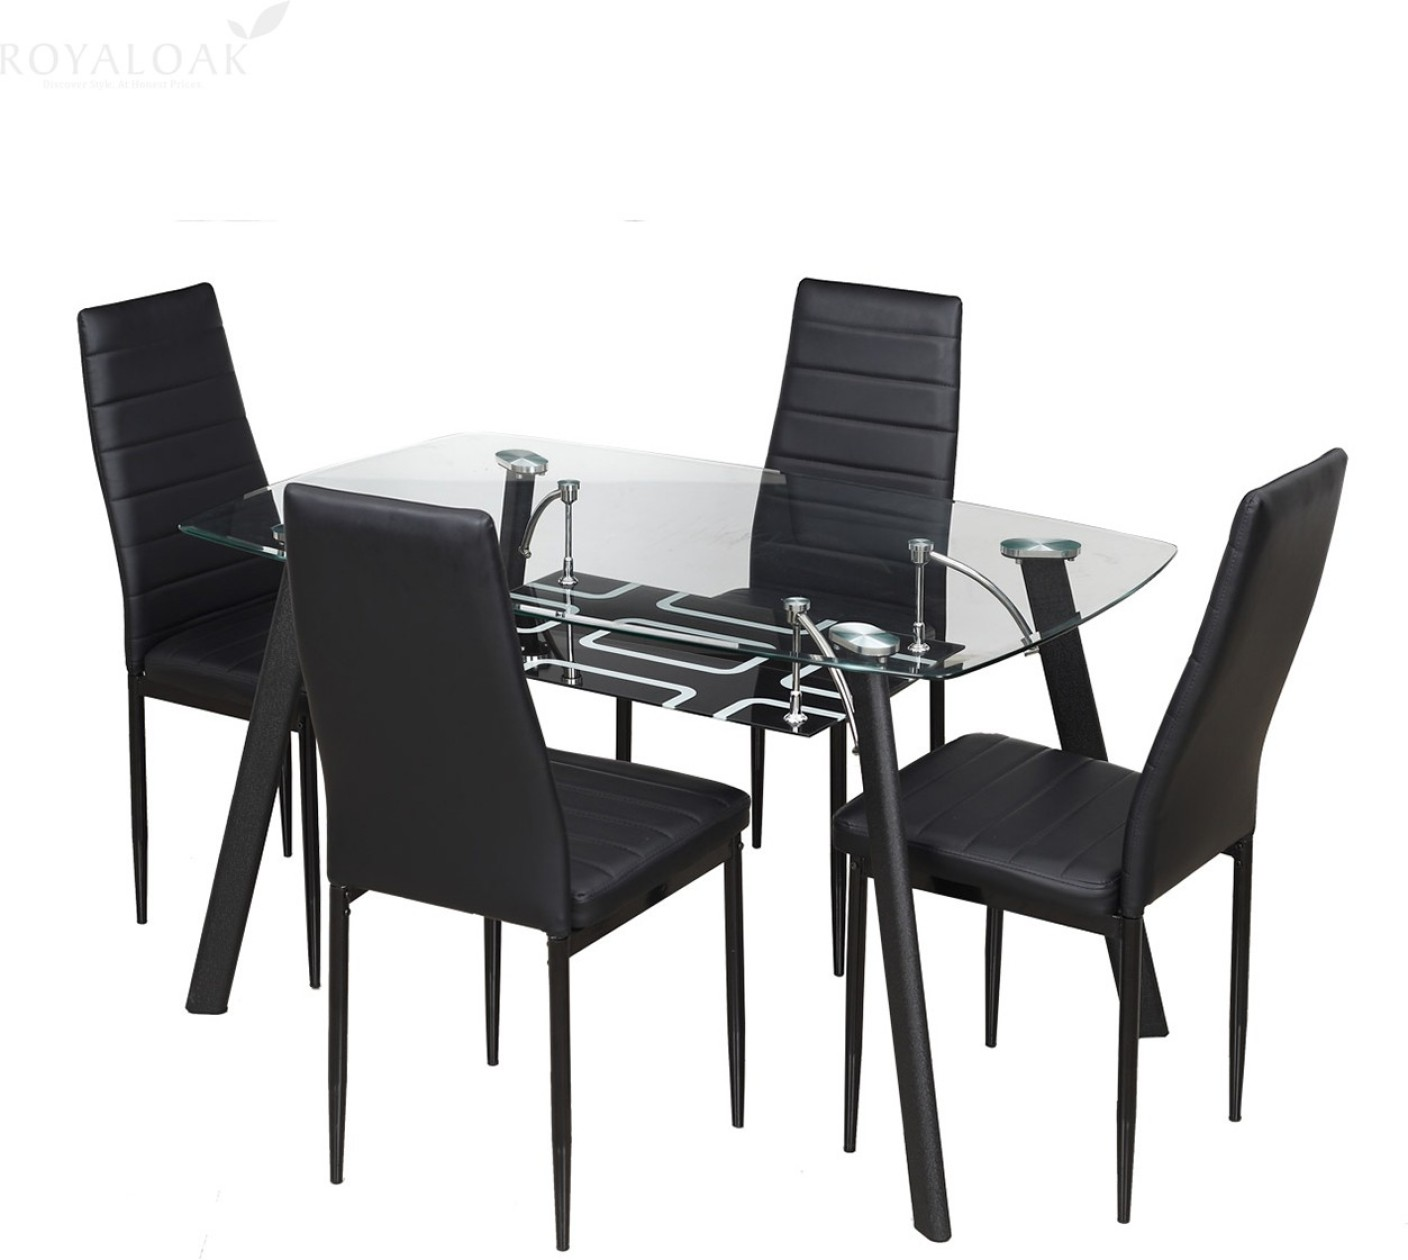 RoyalOak Milan Glass 4 Seater Dining Set Price in India  : 4 seater black carbon steel milan royaloak black original imaexbsgq6hhc34j from www.flipkart.com size 1408 x 1260 jpeg 131kB